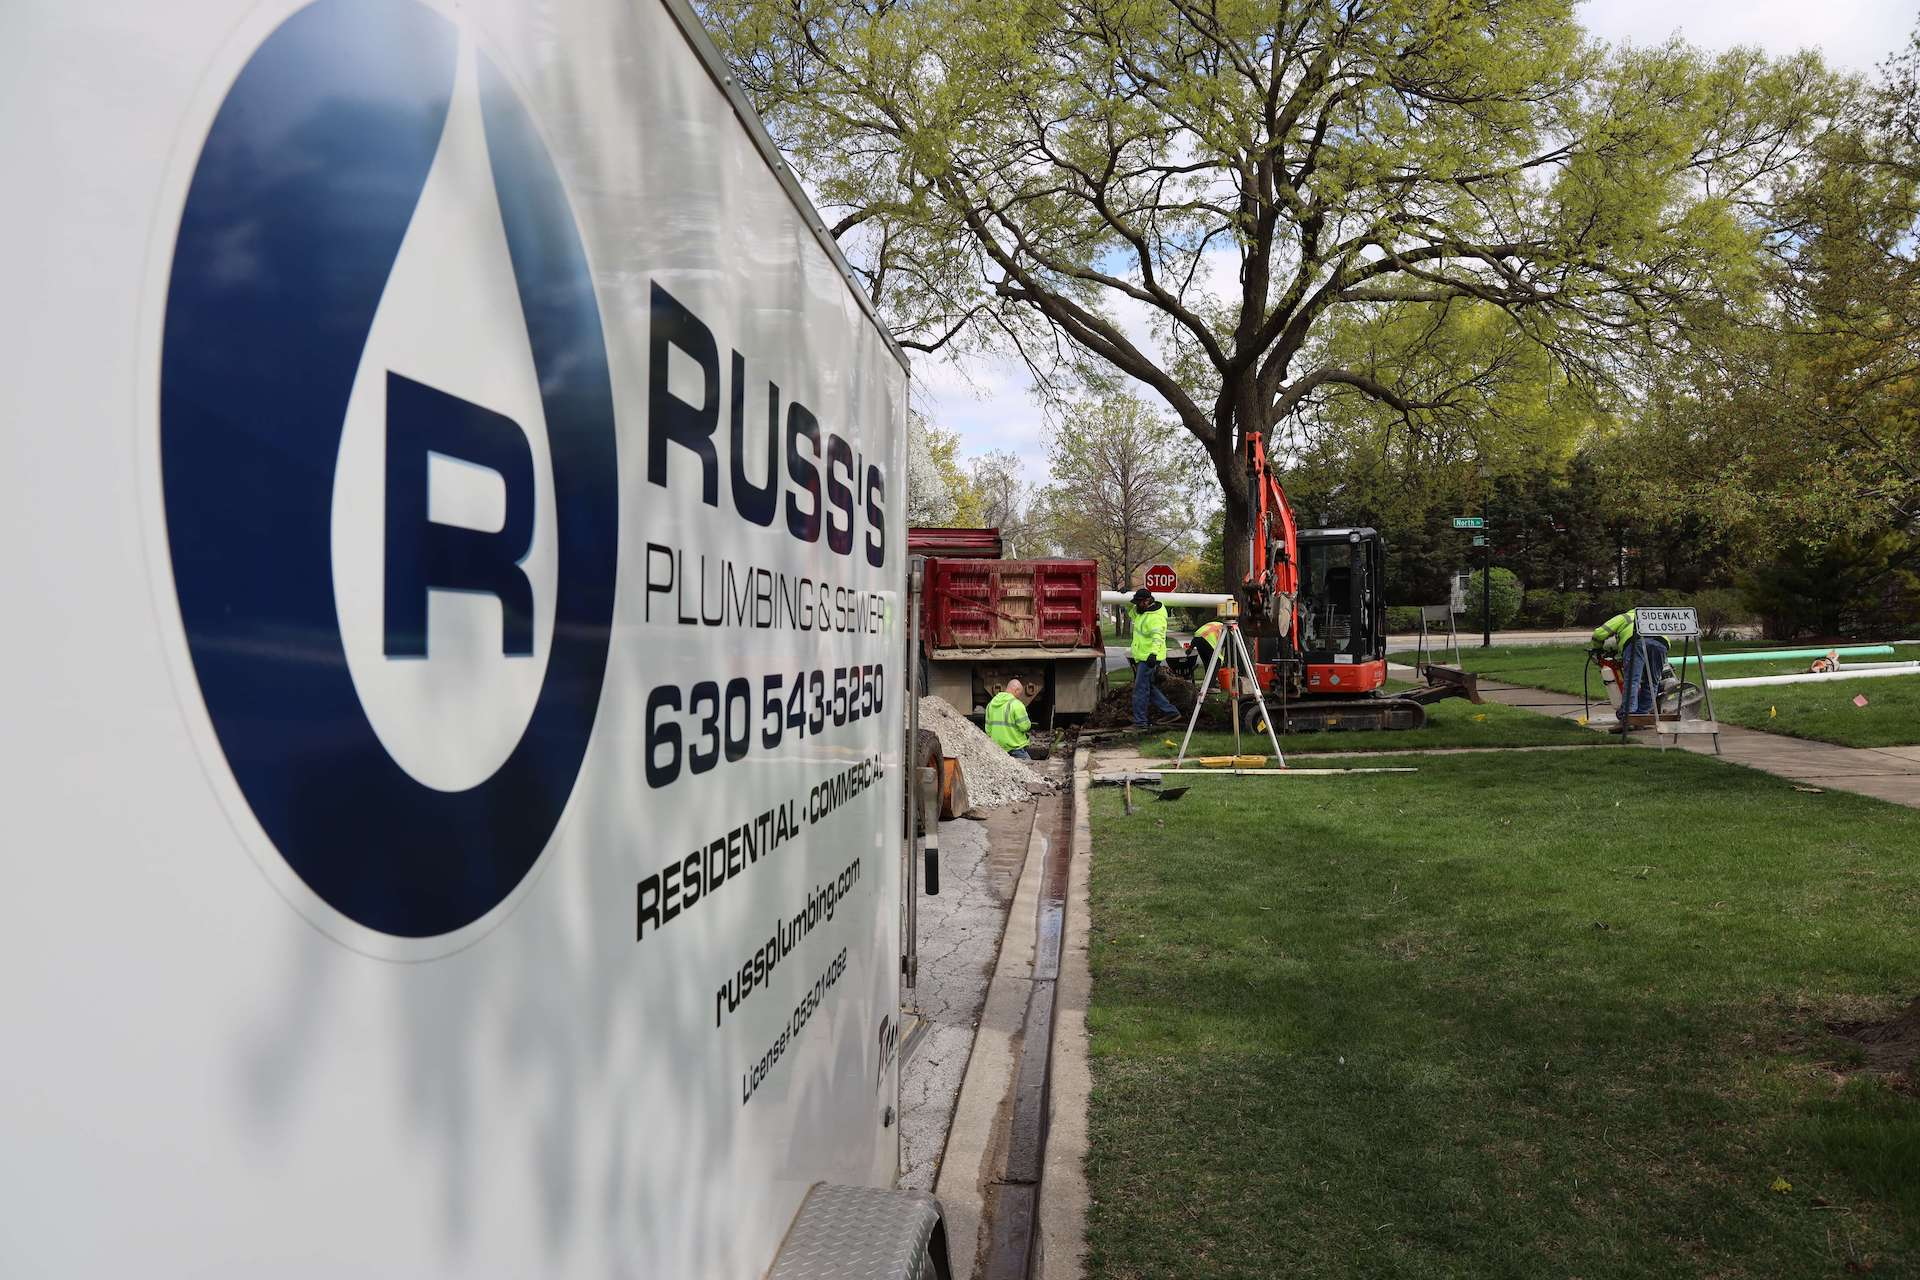 Russ's Plumbing & Sewer Inc. white truck in front of job site